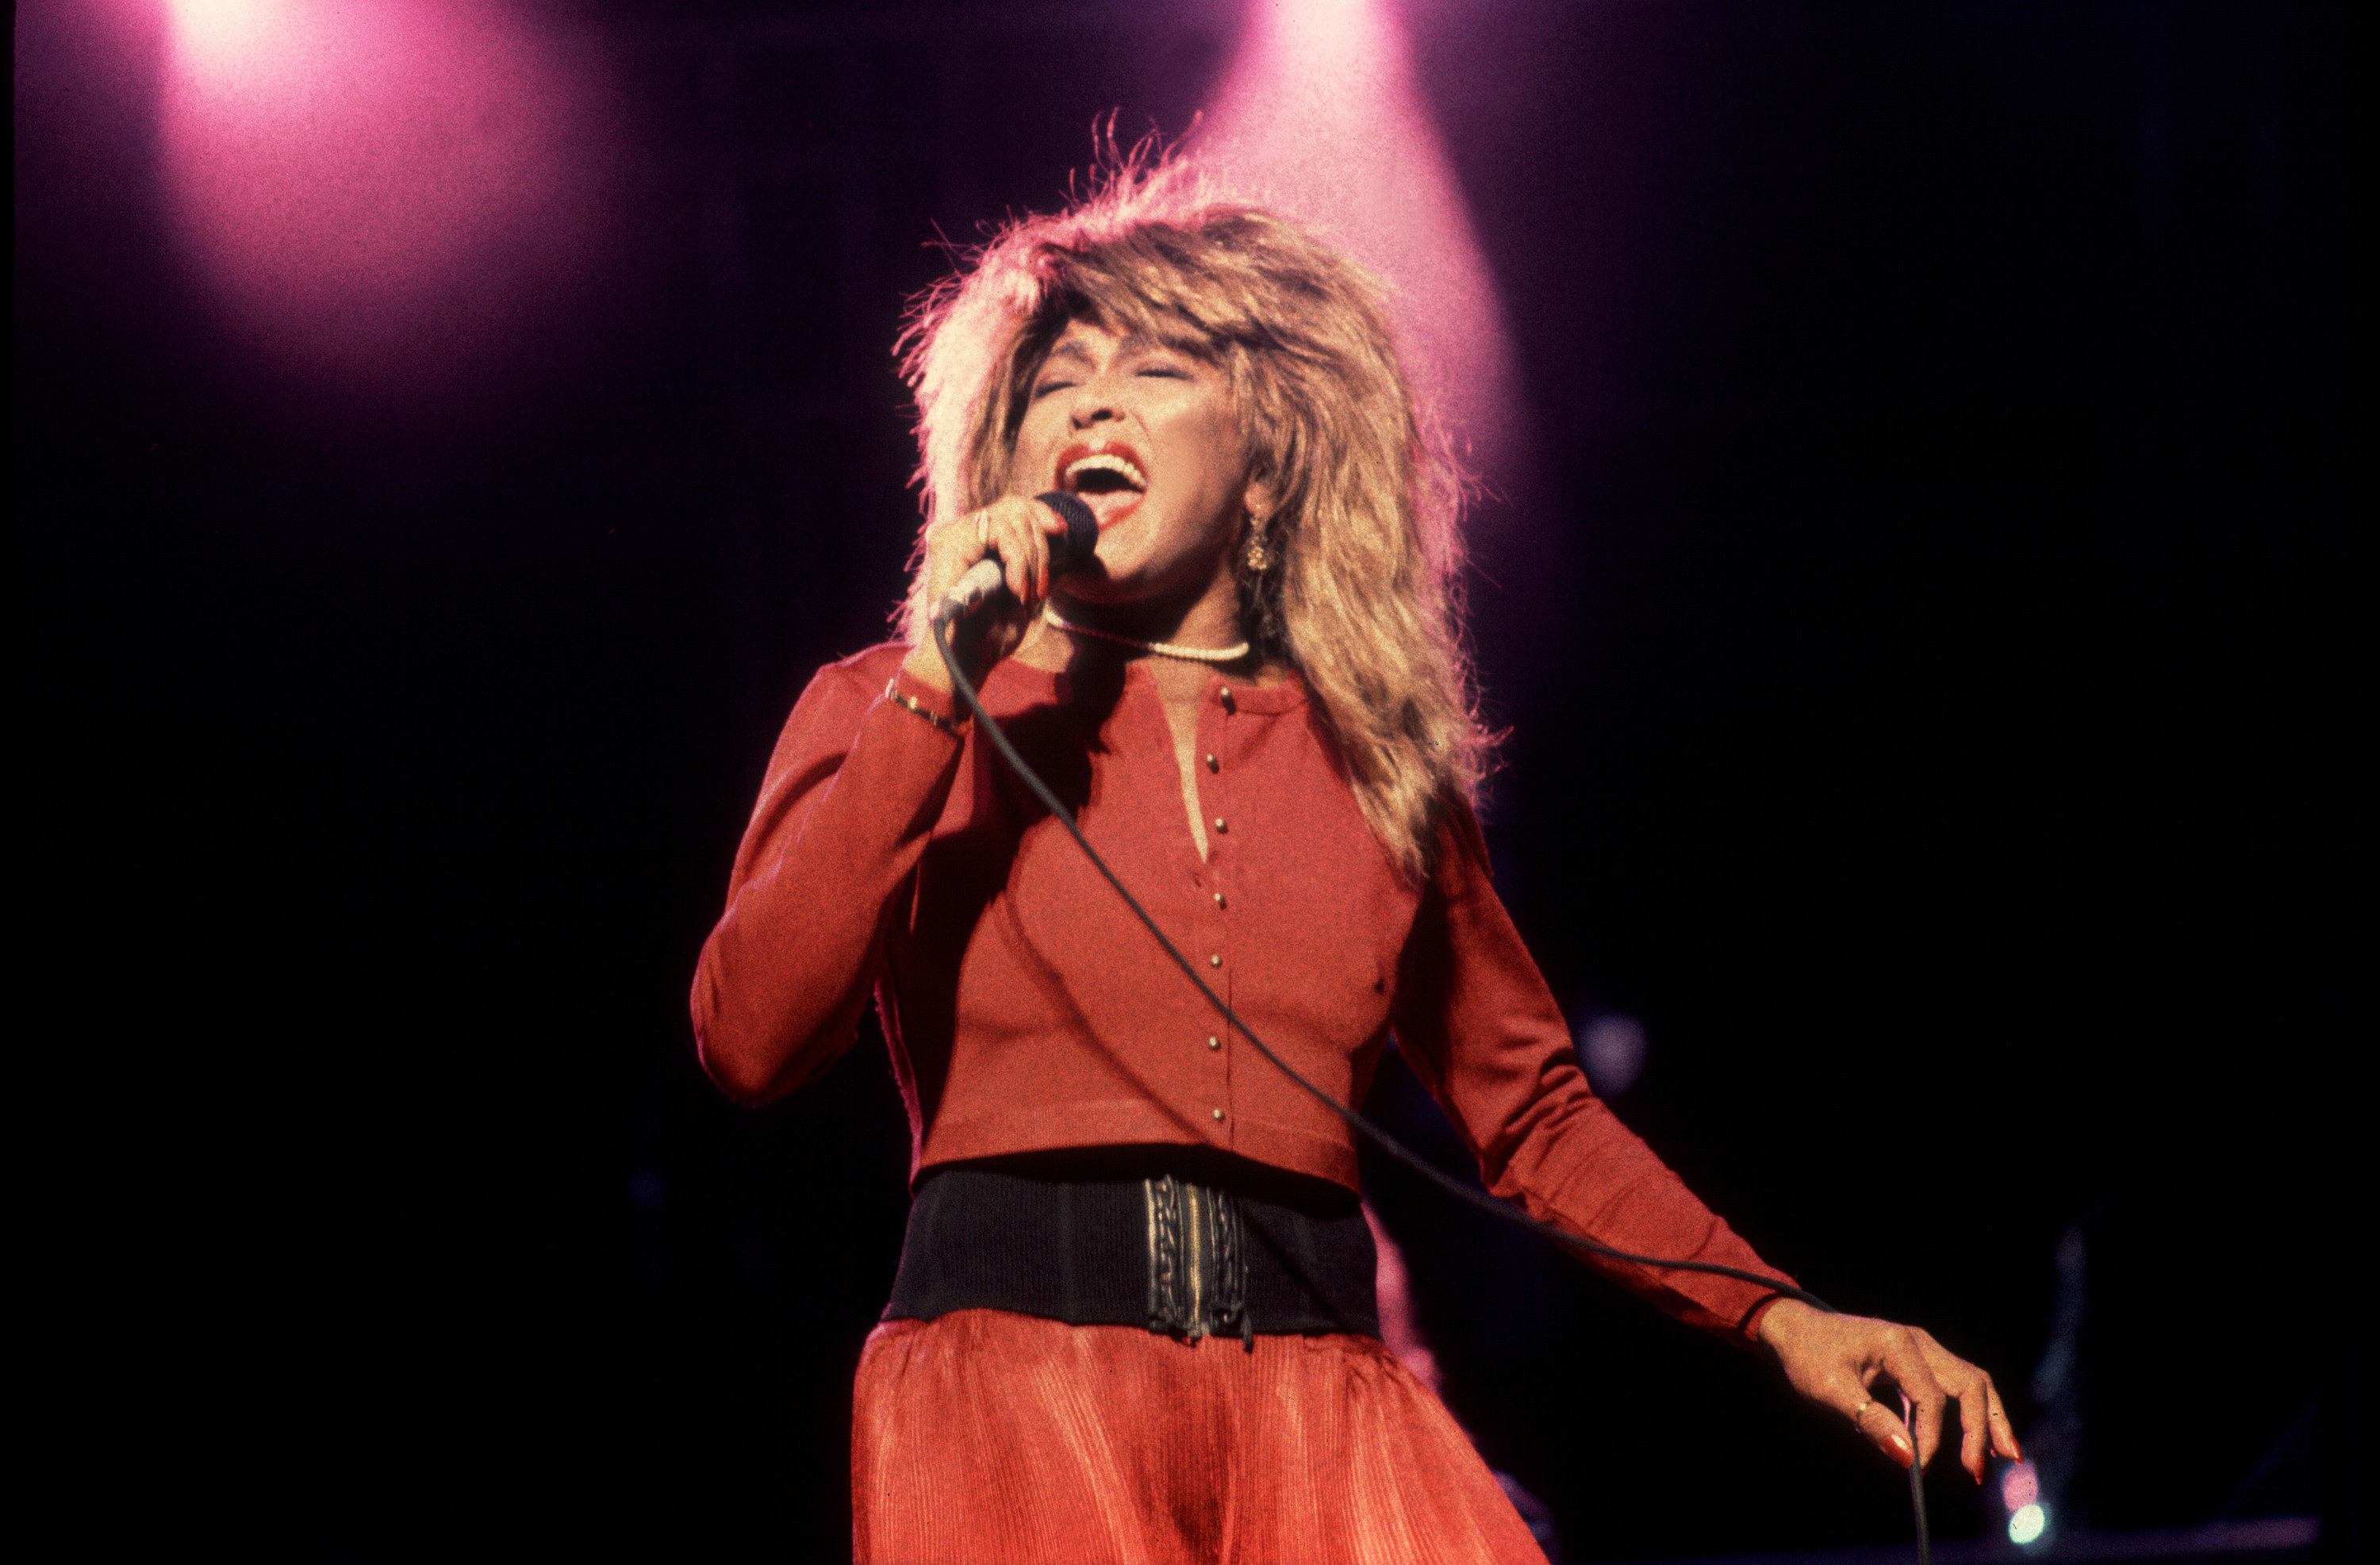 Tina Turner performing with microphone